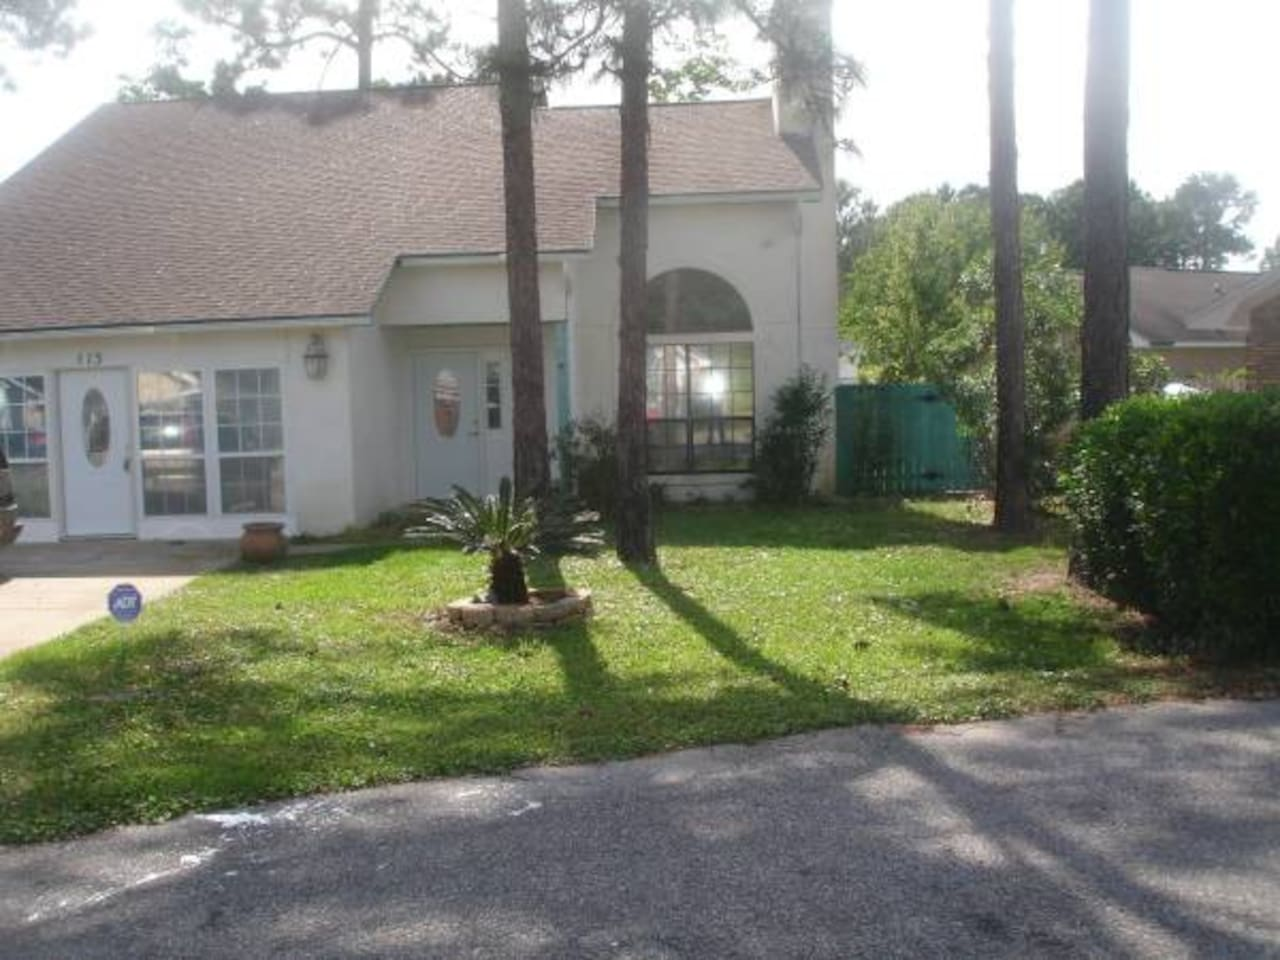 Location Location and Location.  Conveniently located to beach, boat tours, Off Shore Fishing Excursions, Shopping, University, Navy Base, Air Force Base, Restaurants, and various Amusement